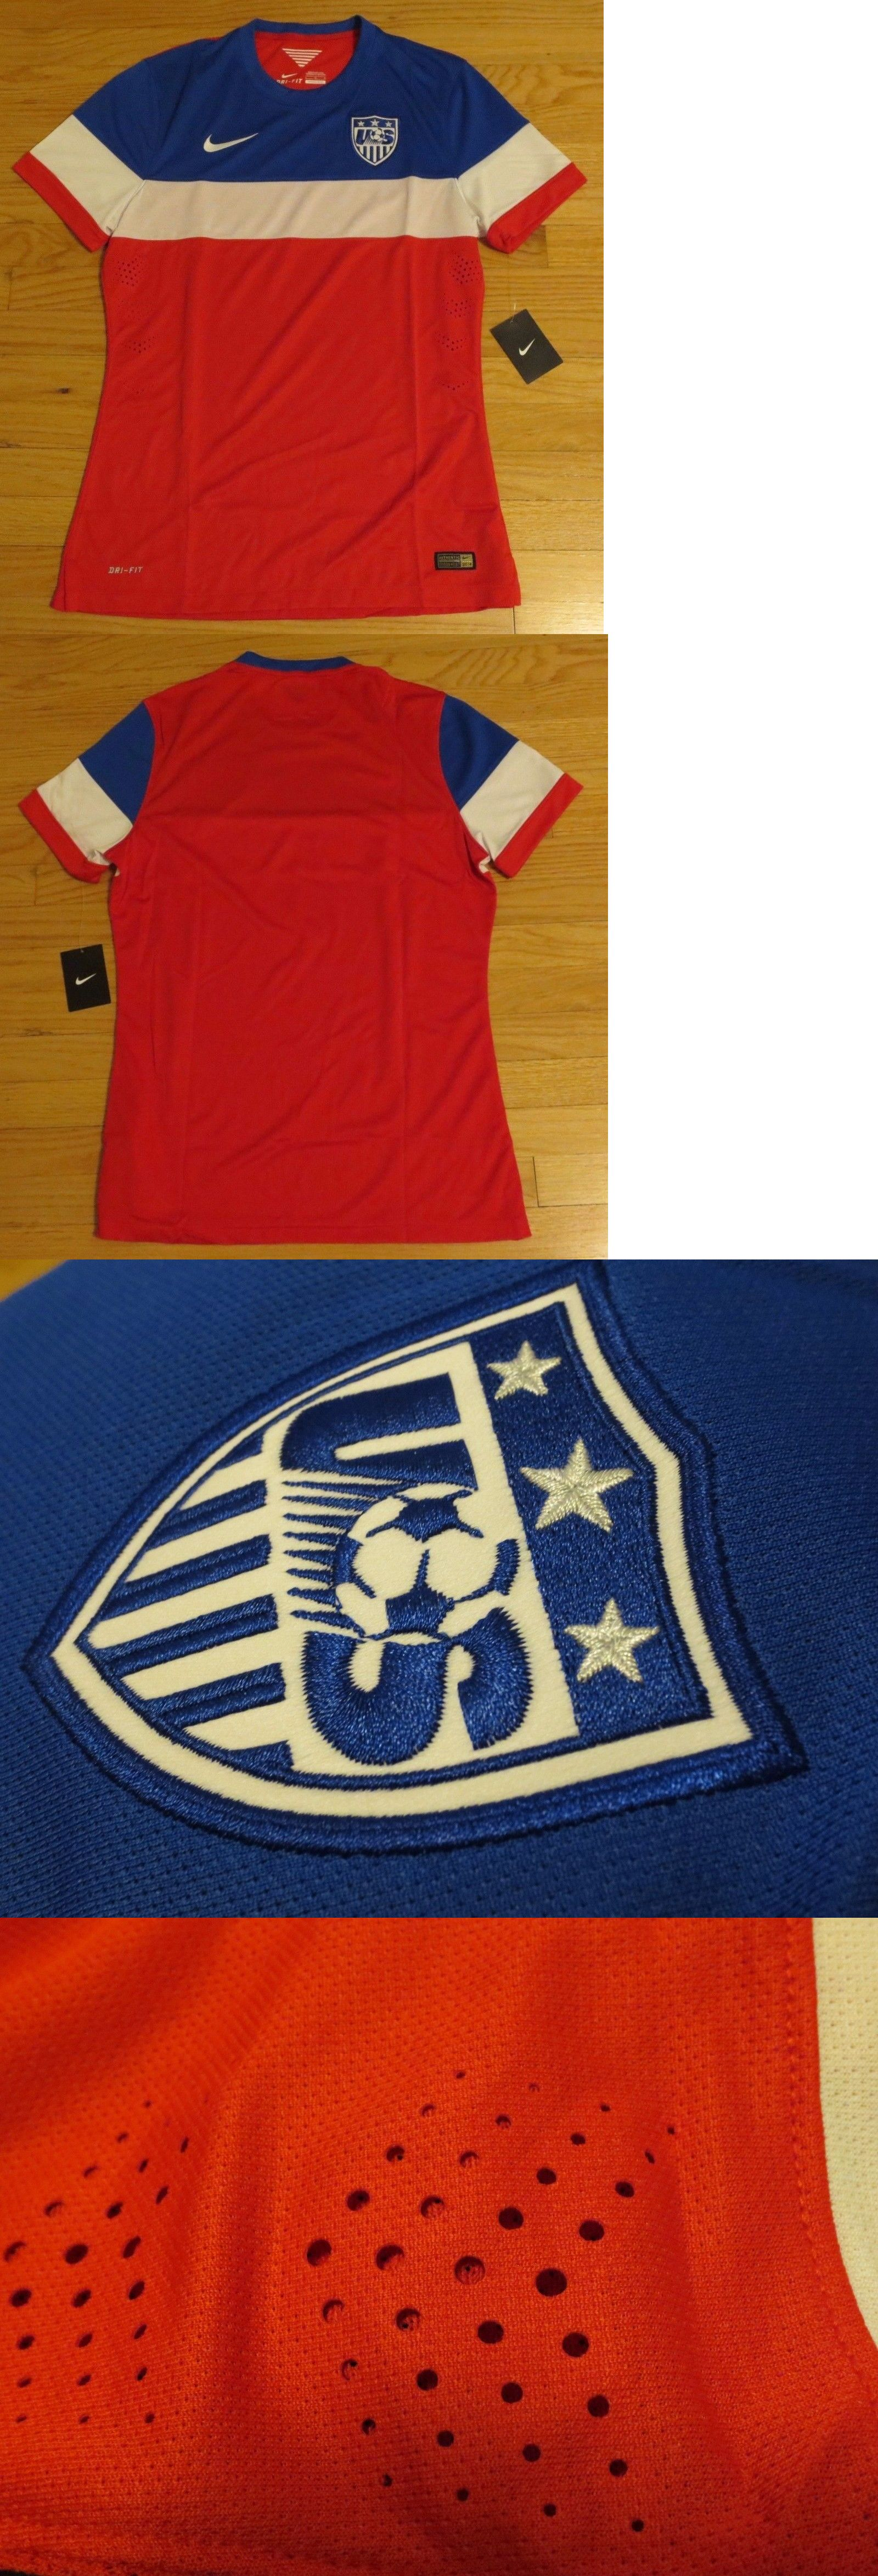 a50f996a3 Soccer-National Teams 2891  Nike 2014 Team Usa Soccer Jersey Large New  Authentic World